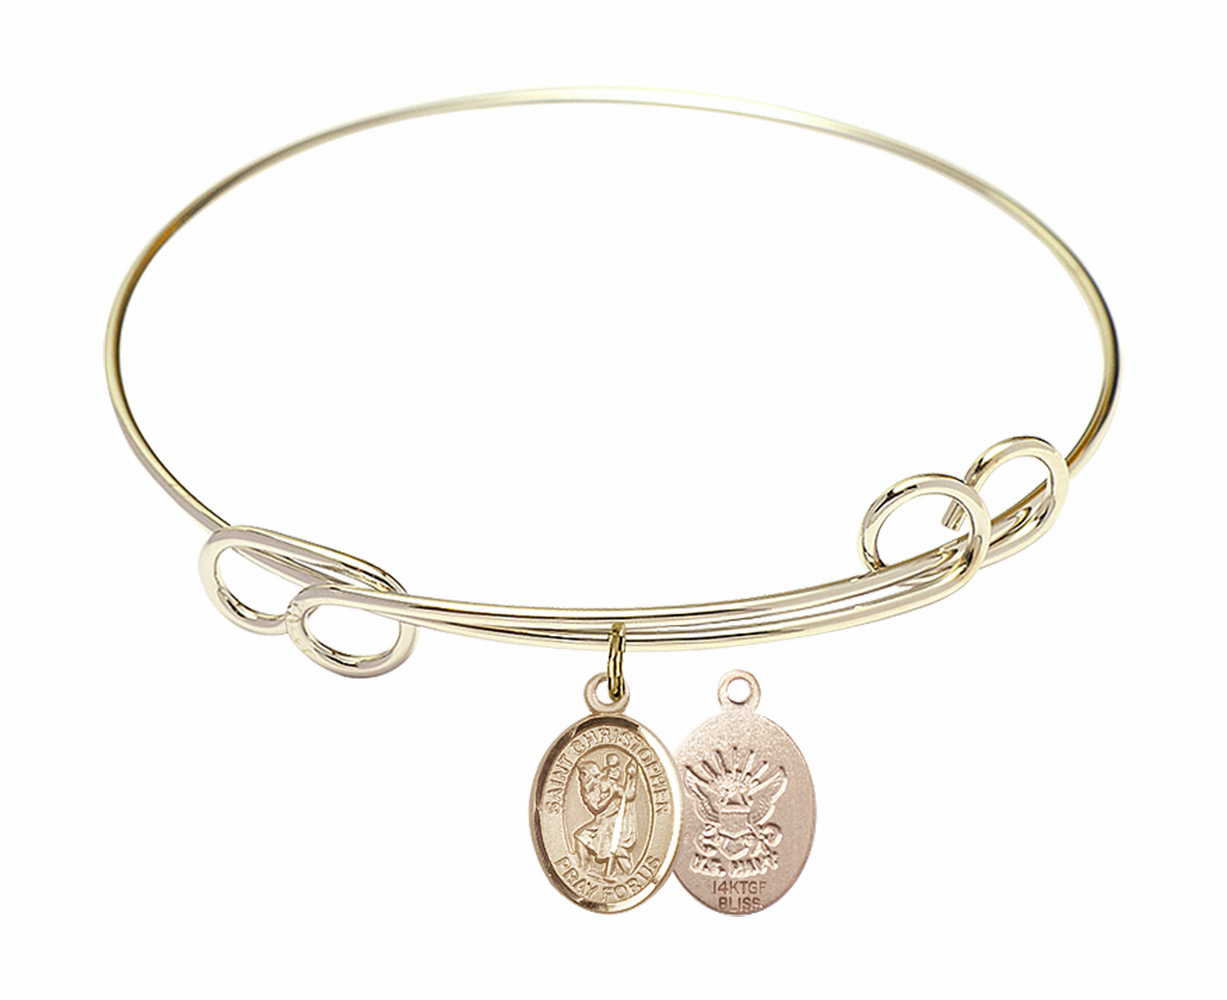 Gold-Filled Twisted St Christopher Navy Bangle Charm Bracelet by Bliss